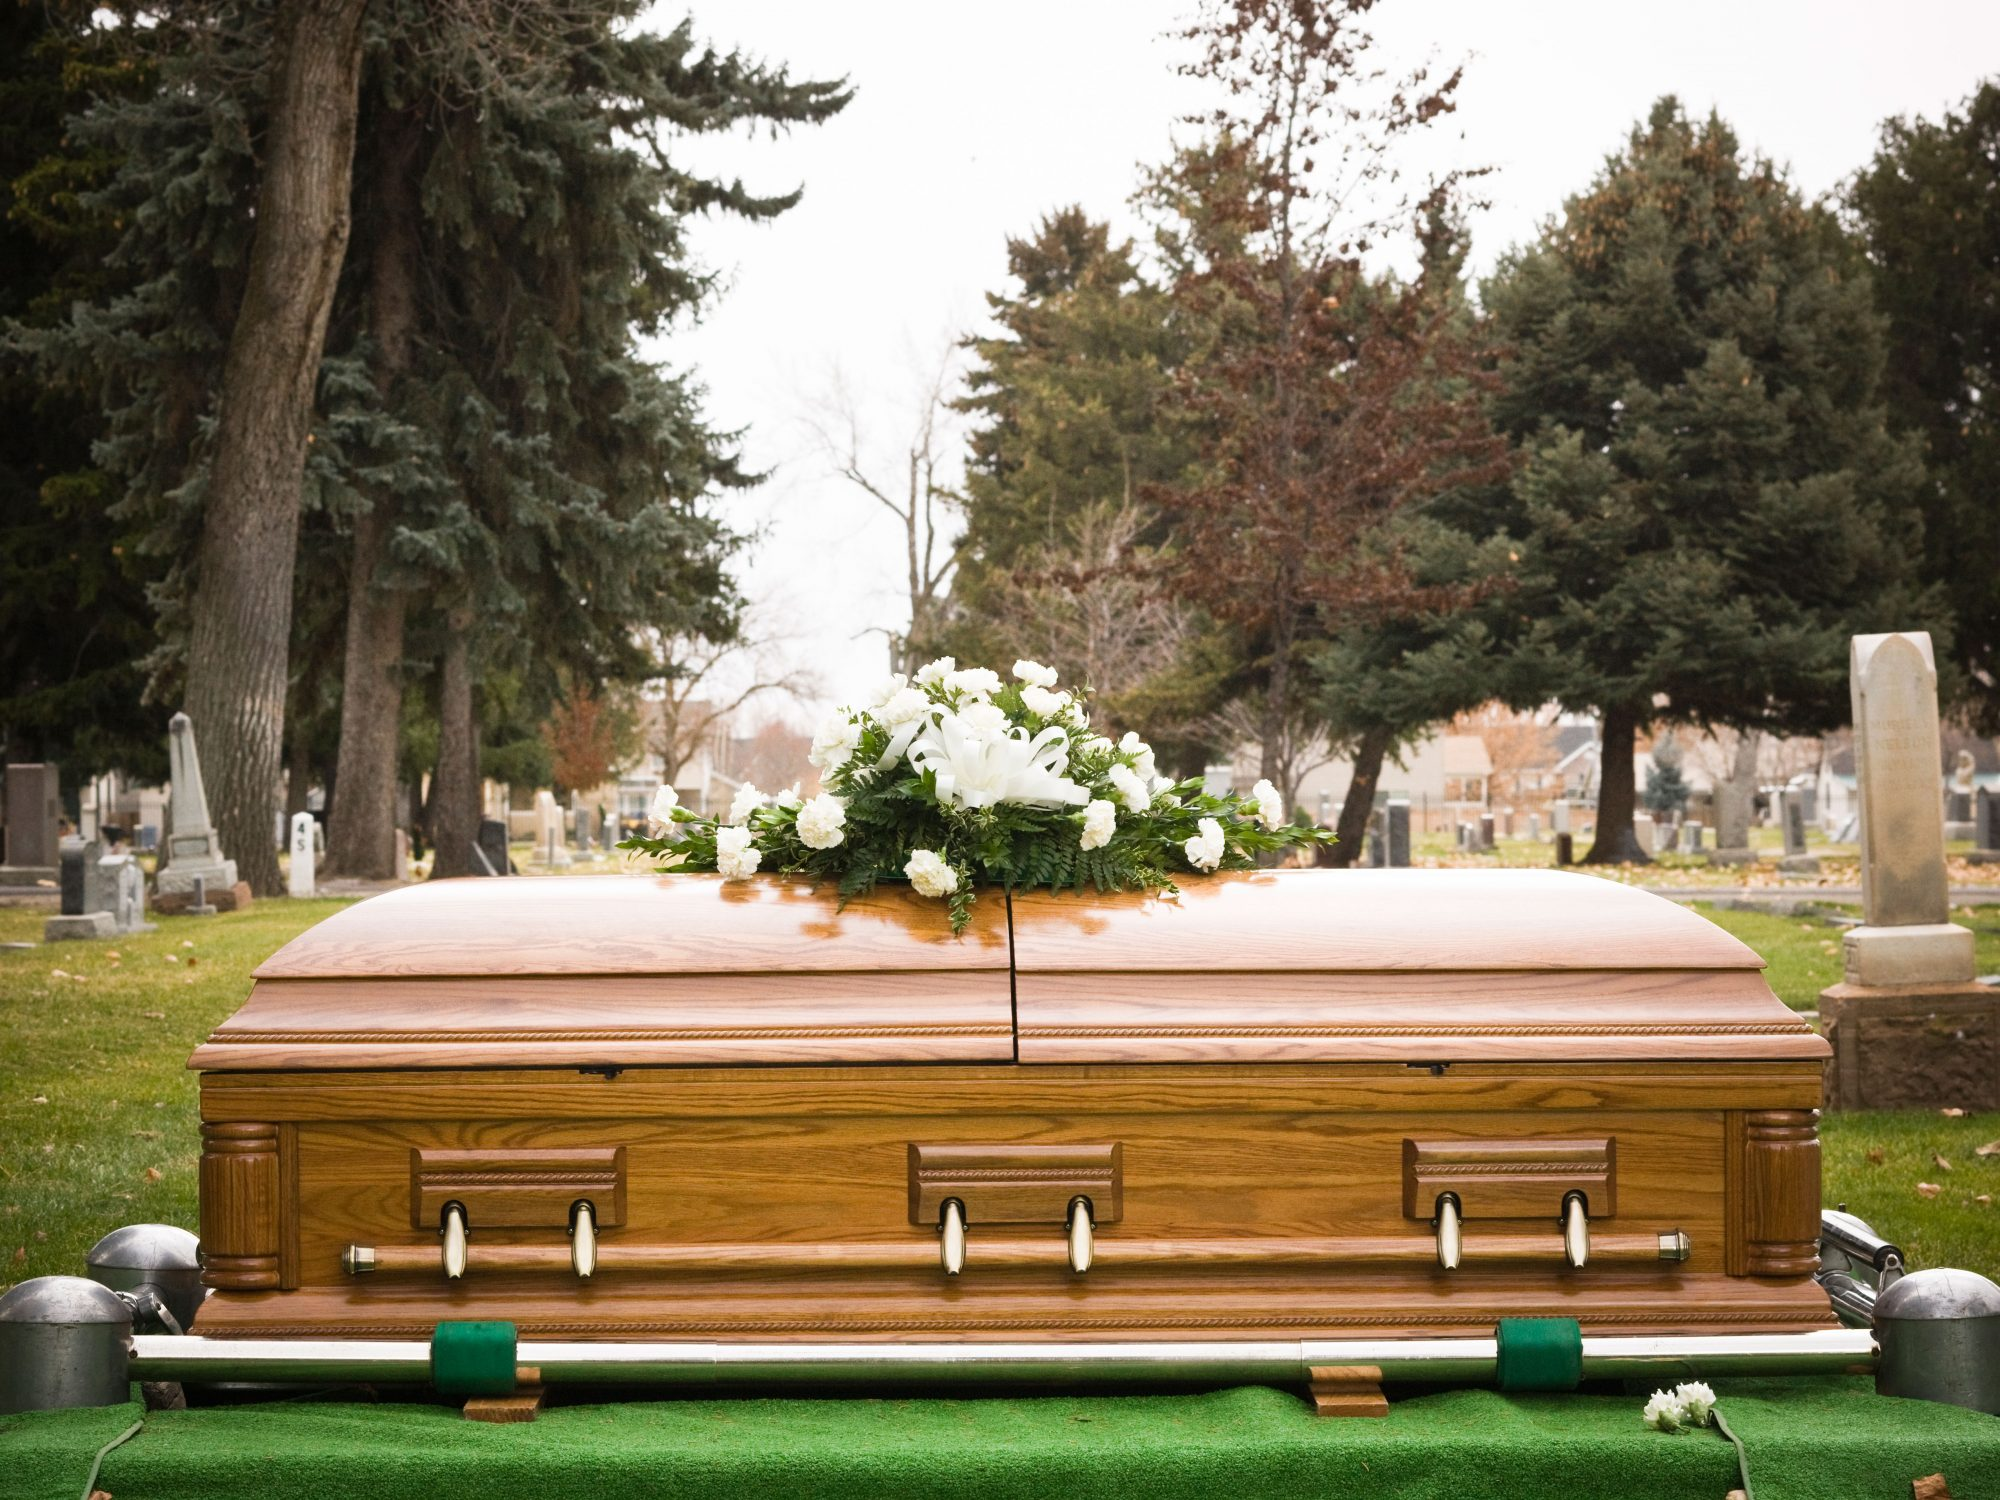 Funeral Coffin at Cemetery